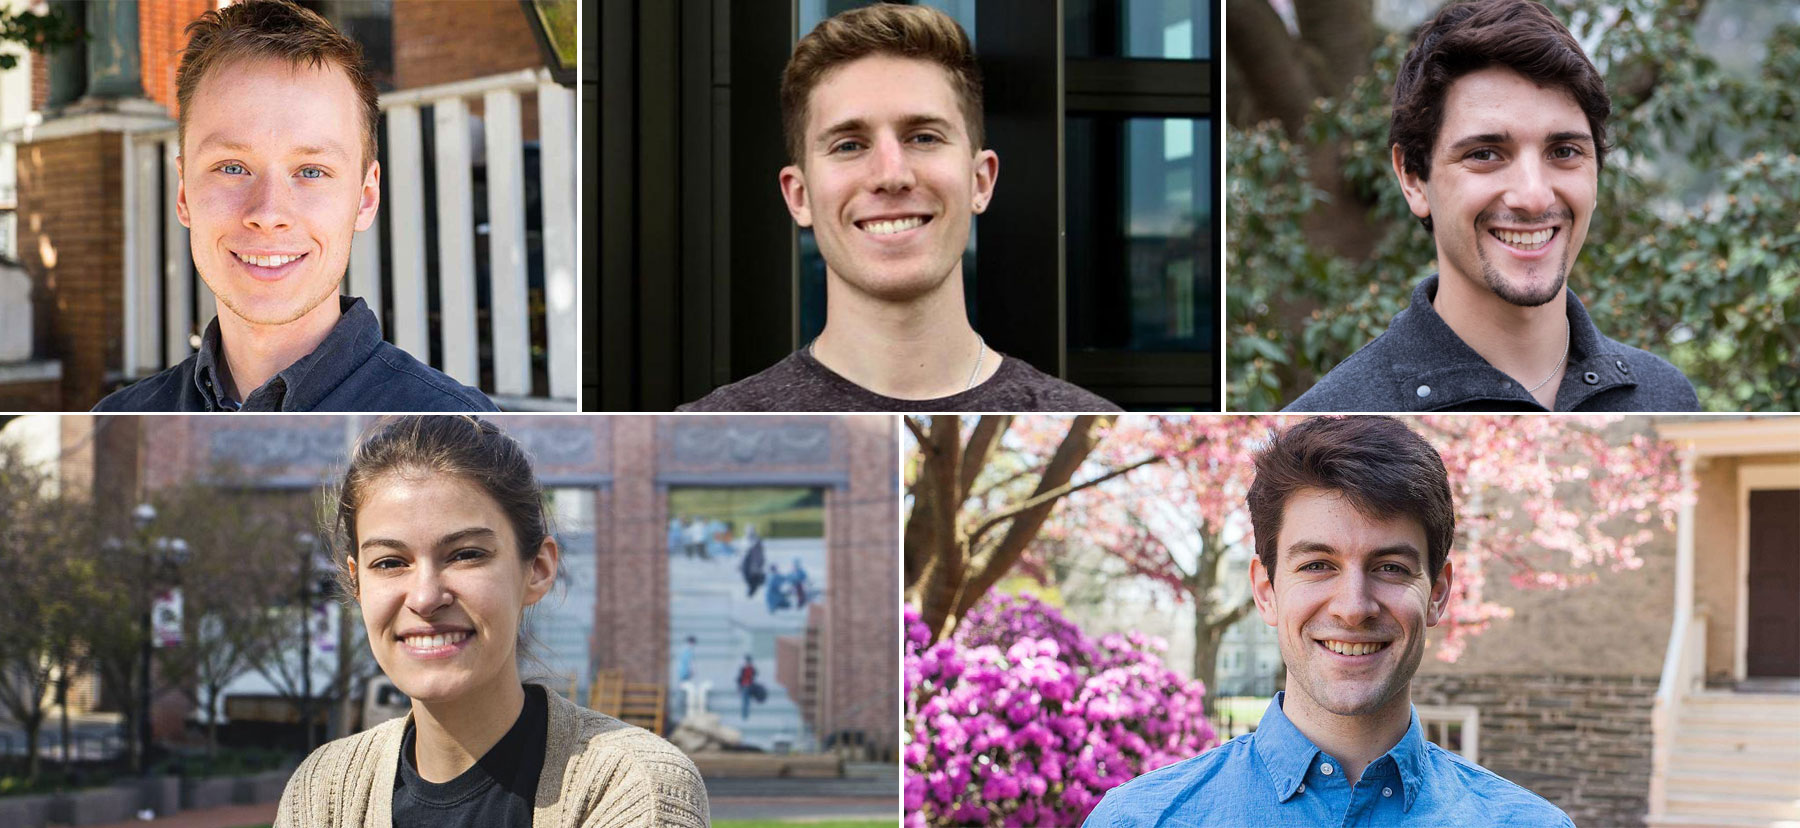 Headshots of the five Fulbright winners